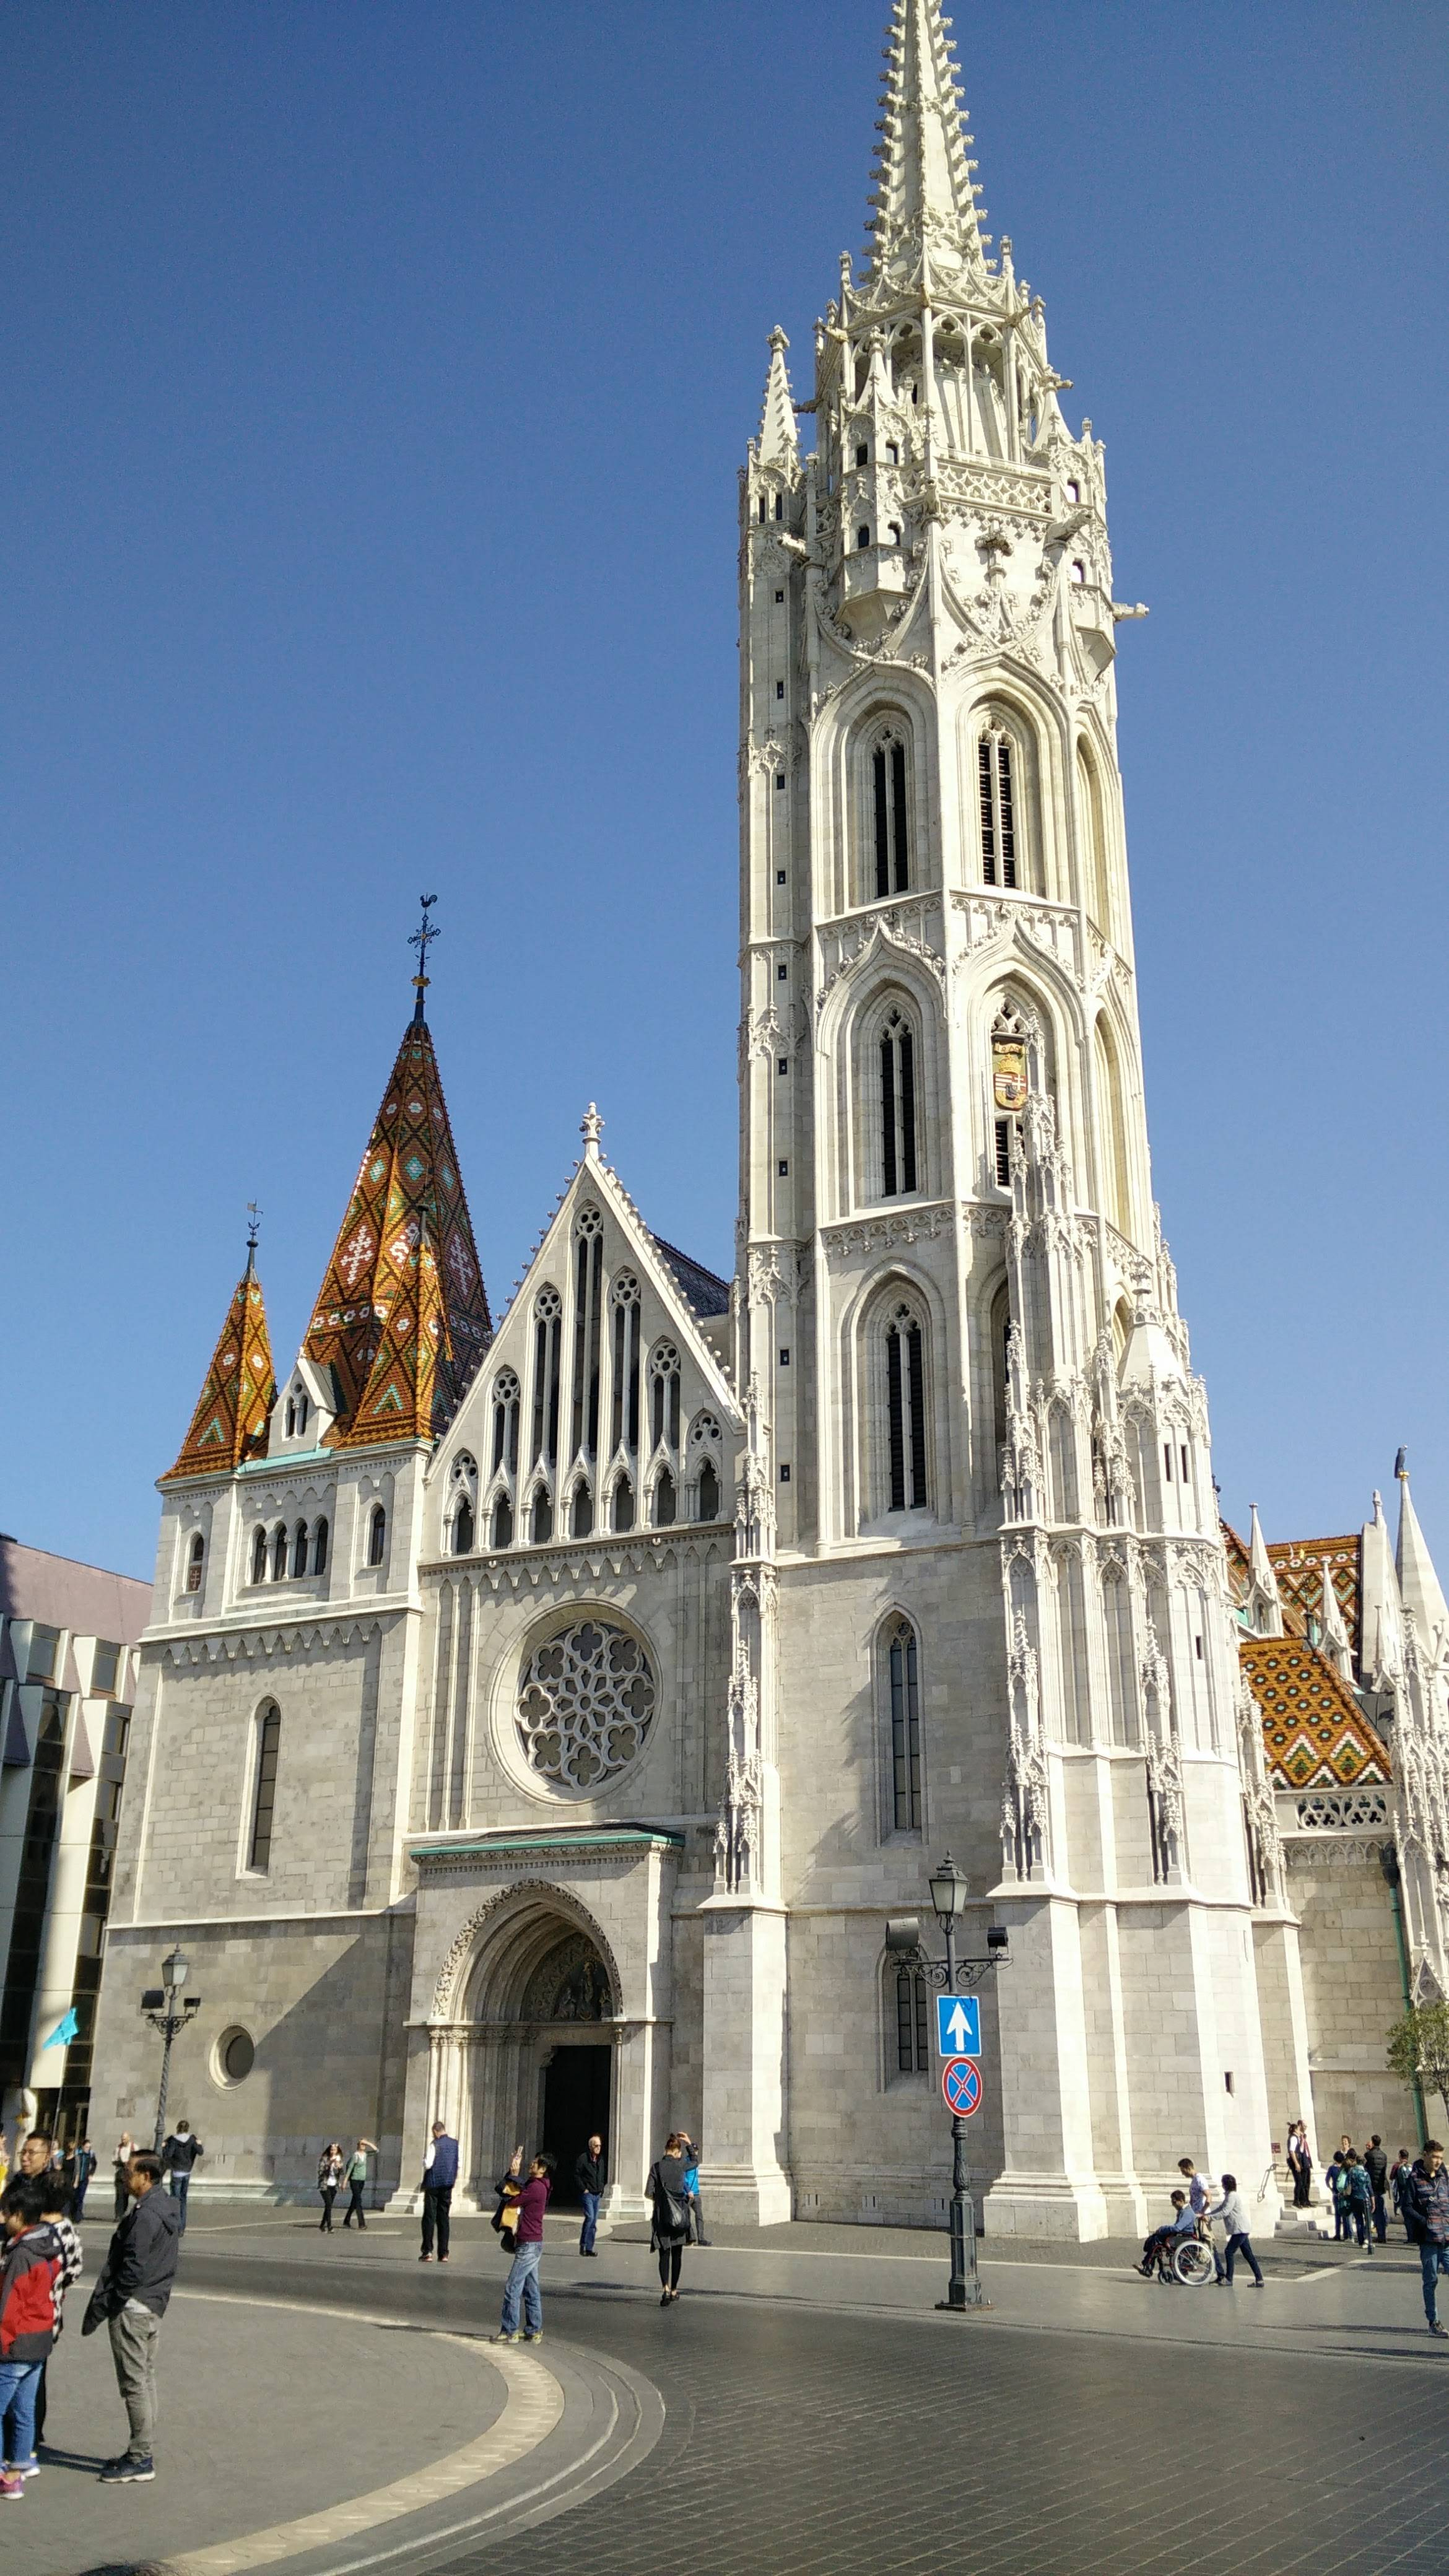 The Matthias Church